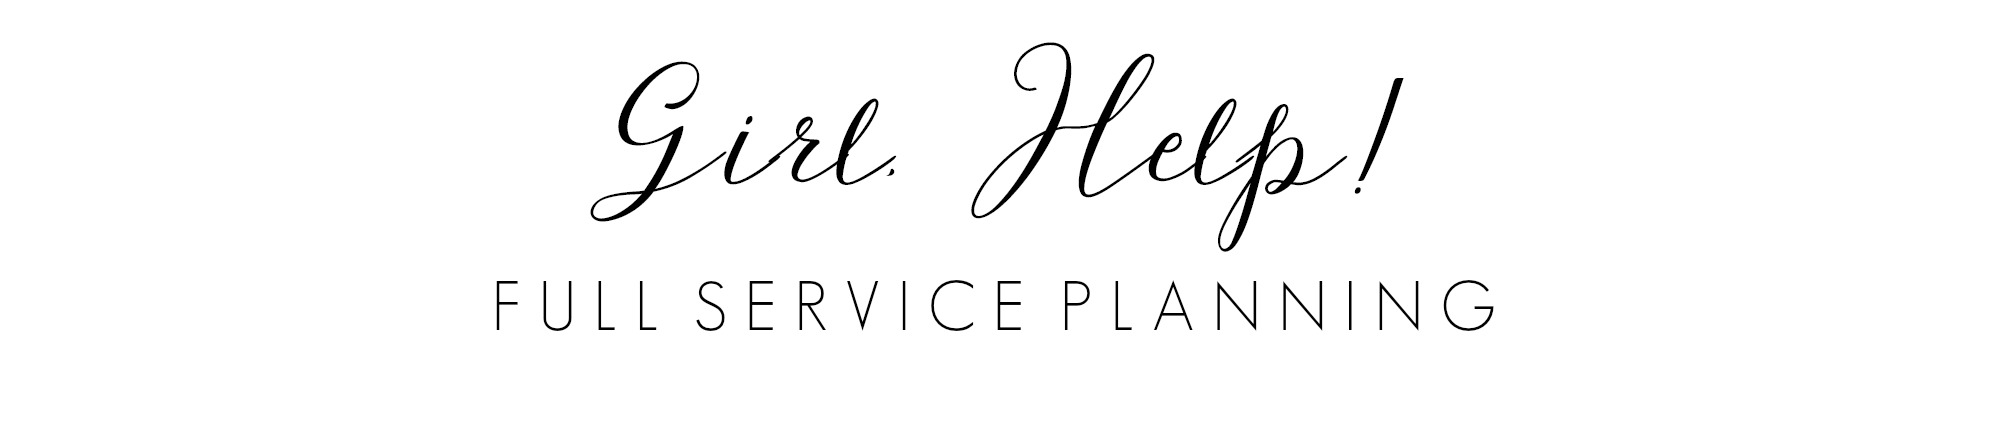 full service wedding planning Raleigh, NC. Wedding planner, Raleigh, NC You're Engaged, now what?